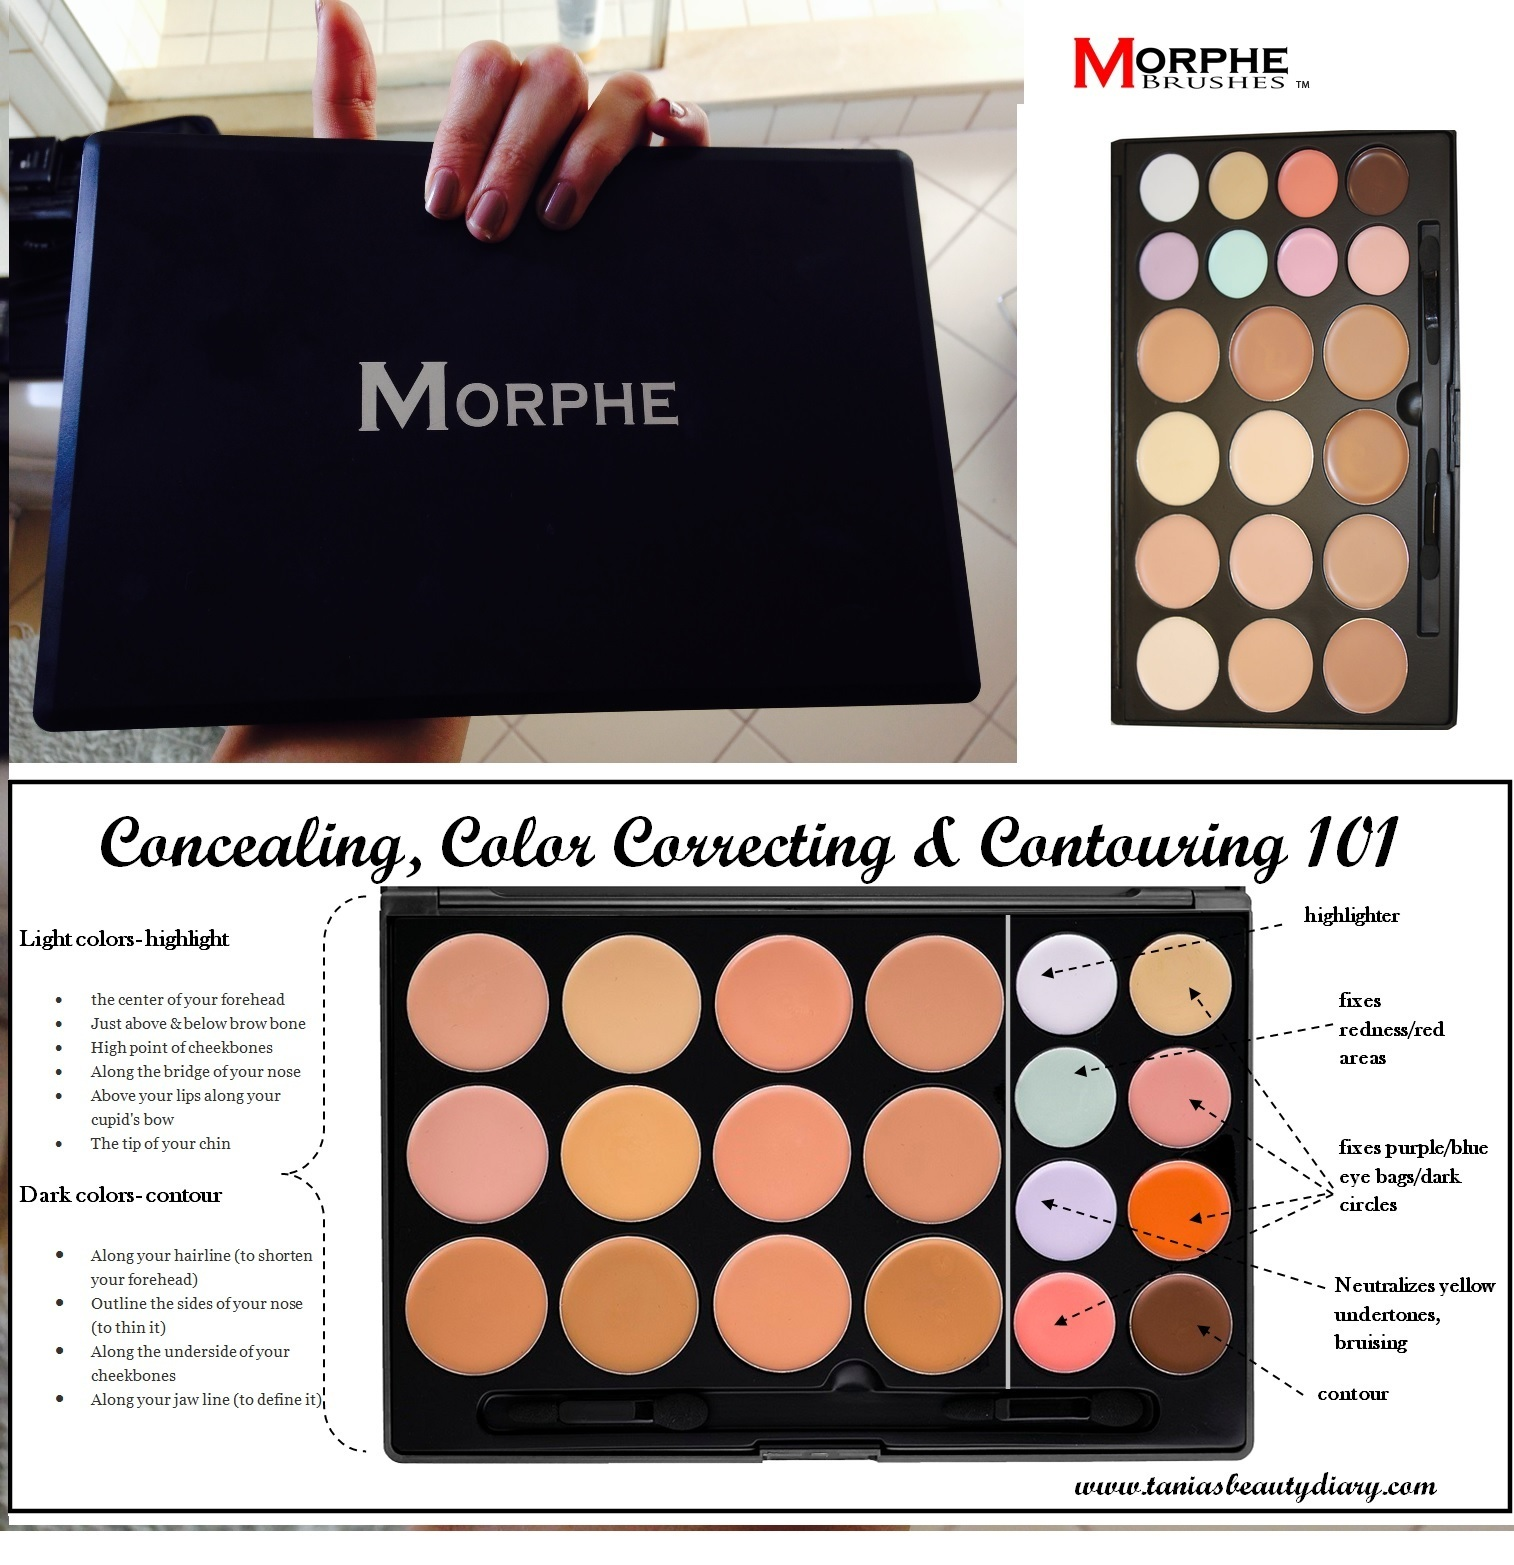 ★Morphe Brushes★20CON - 20 COLOR CONTOUR/CONCEALER PALETTE